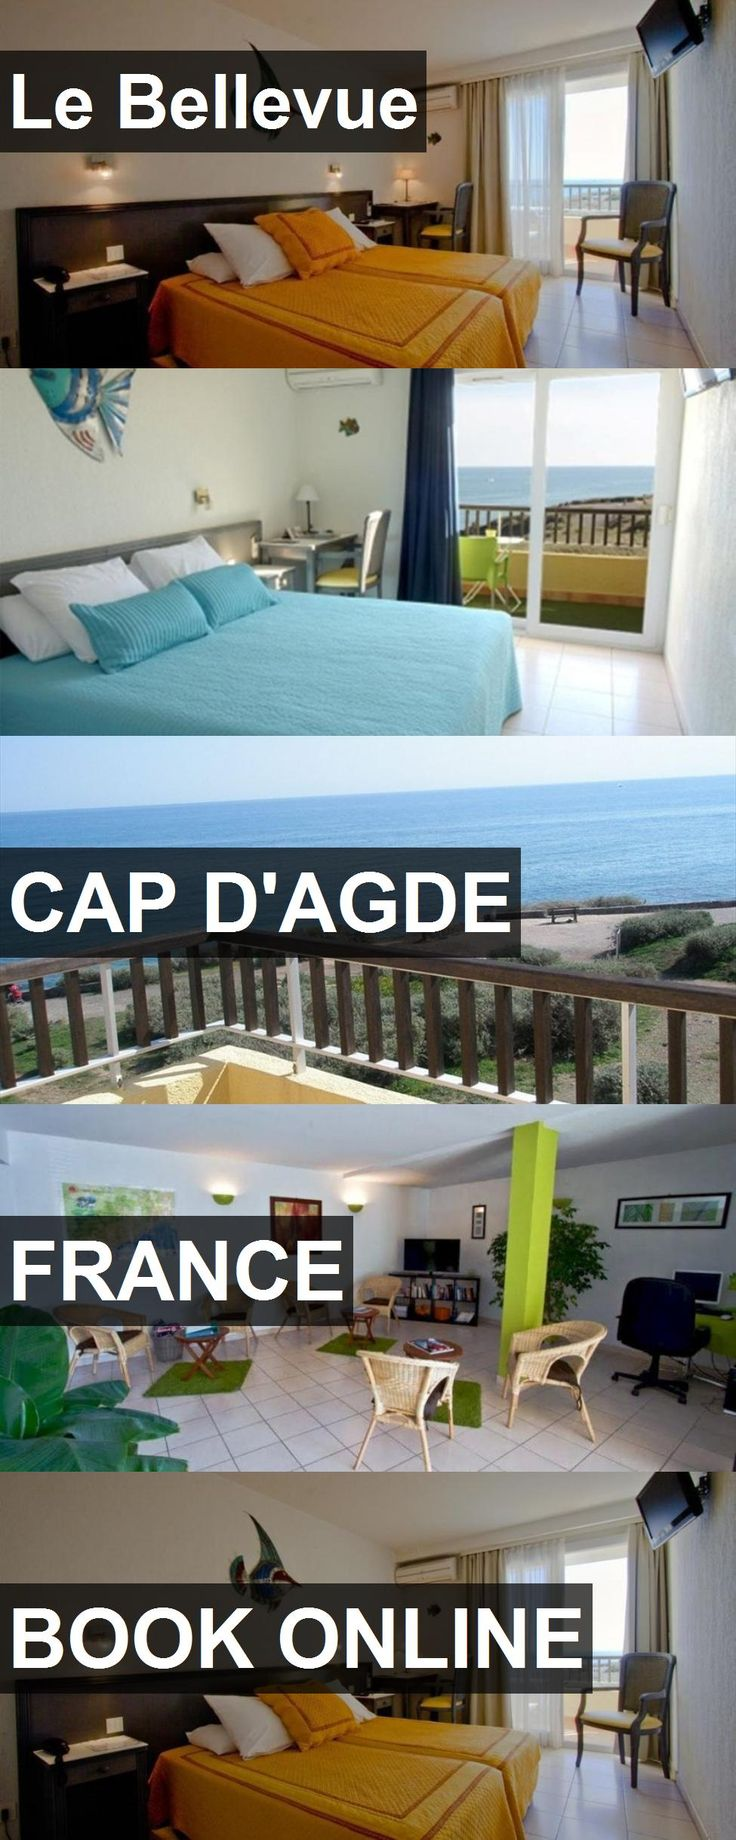 Hotel Le Bellevue in Cap d'Agde, France. For more information, photos, reviews and best prices please follow the link. #France #Capd'Agde #LeBellevue #hotel #travel #vacation